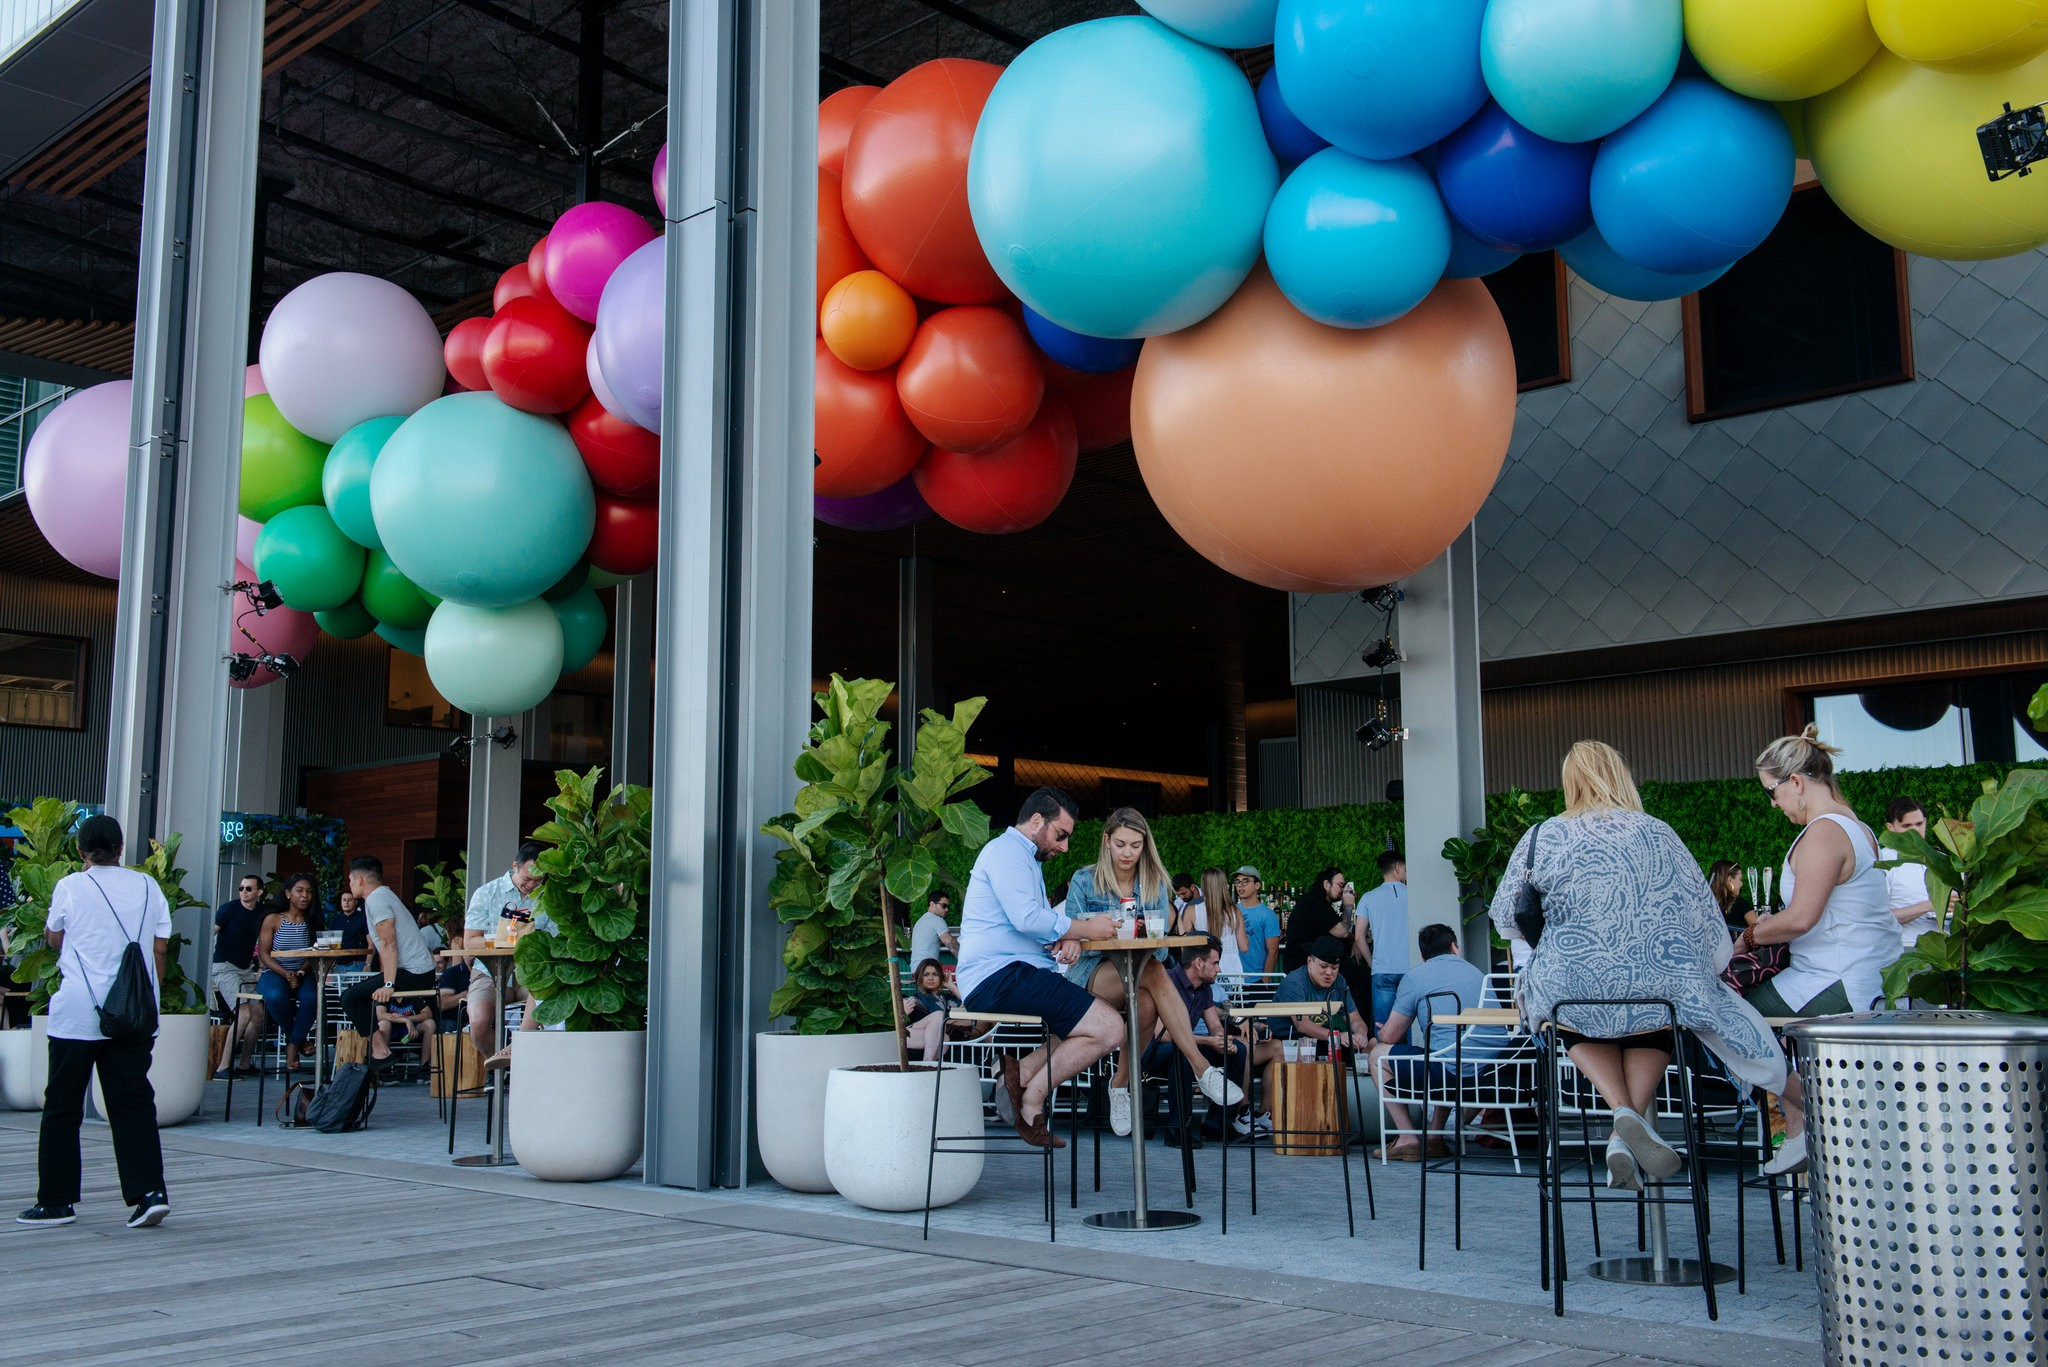 PIER 17 - BALLOON RAINBOW